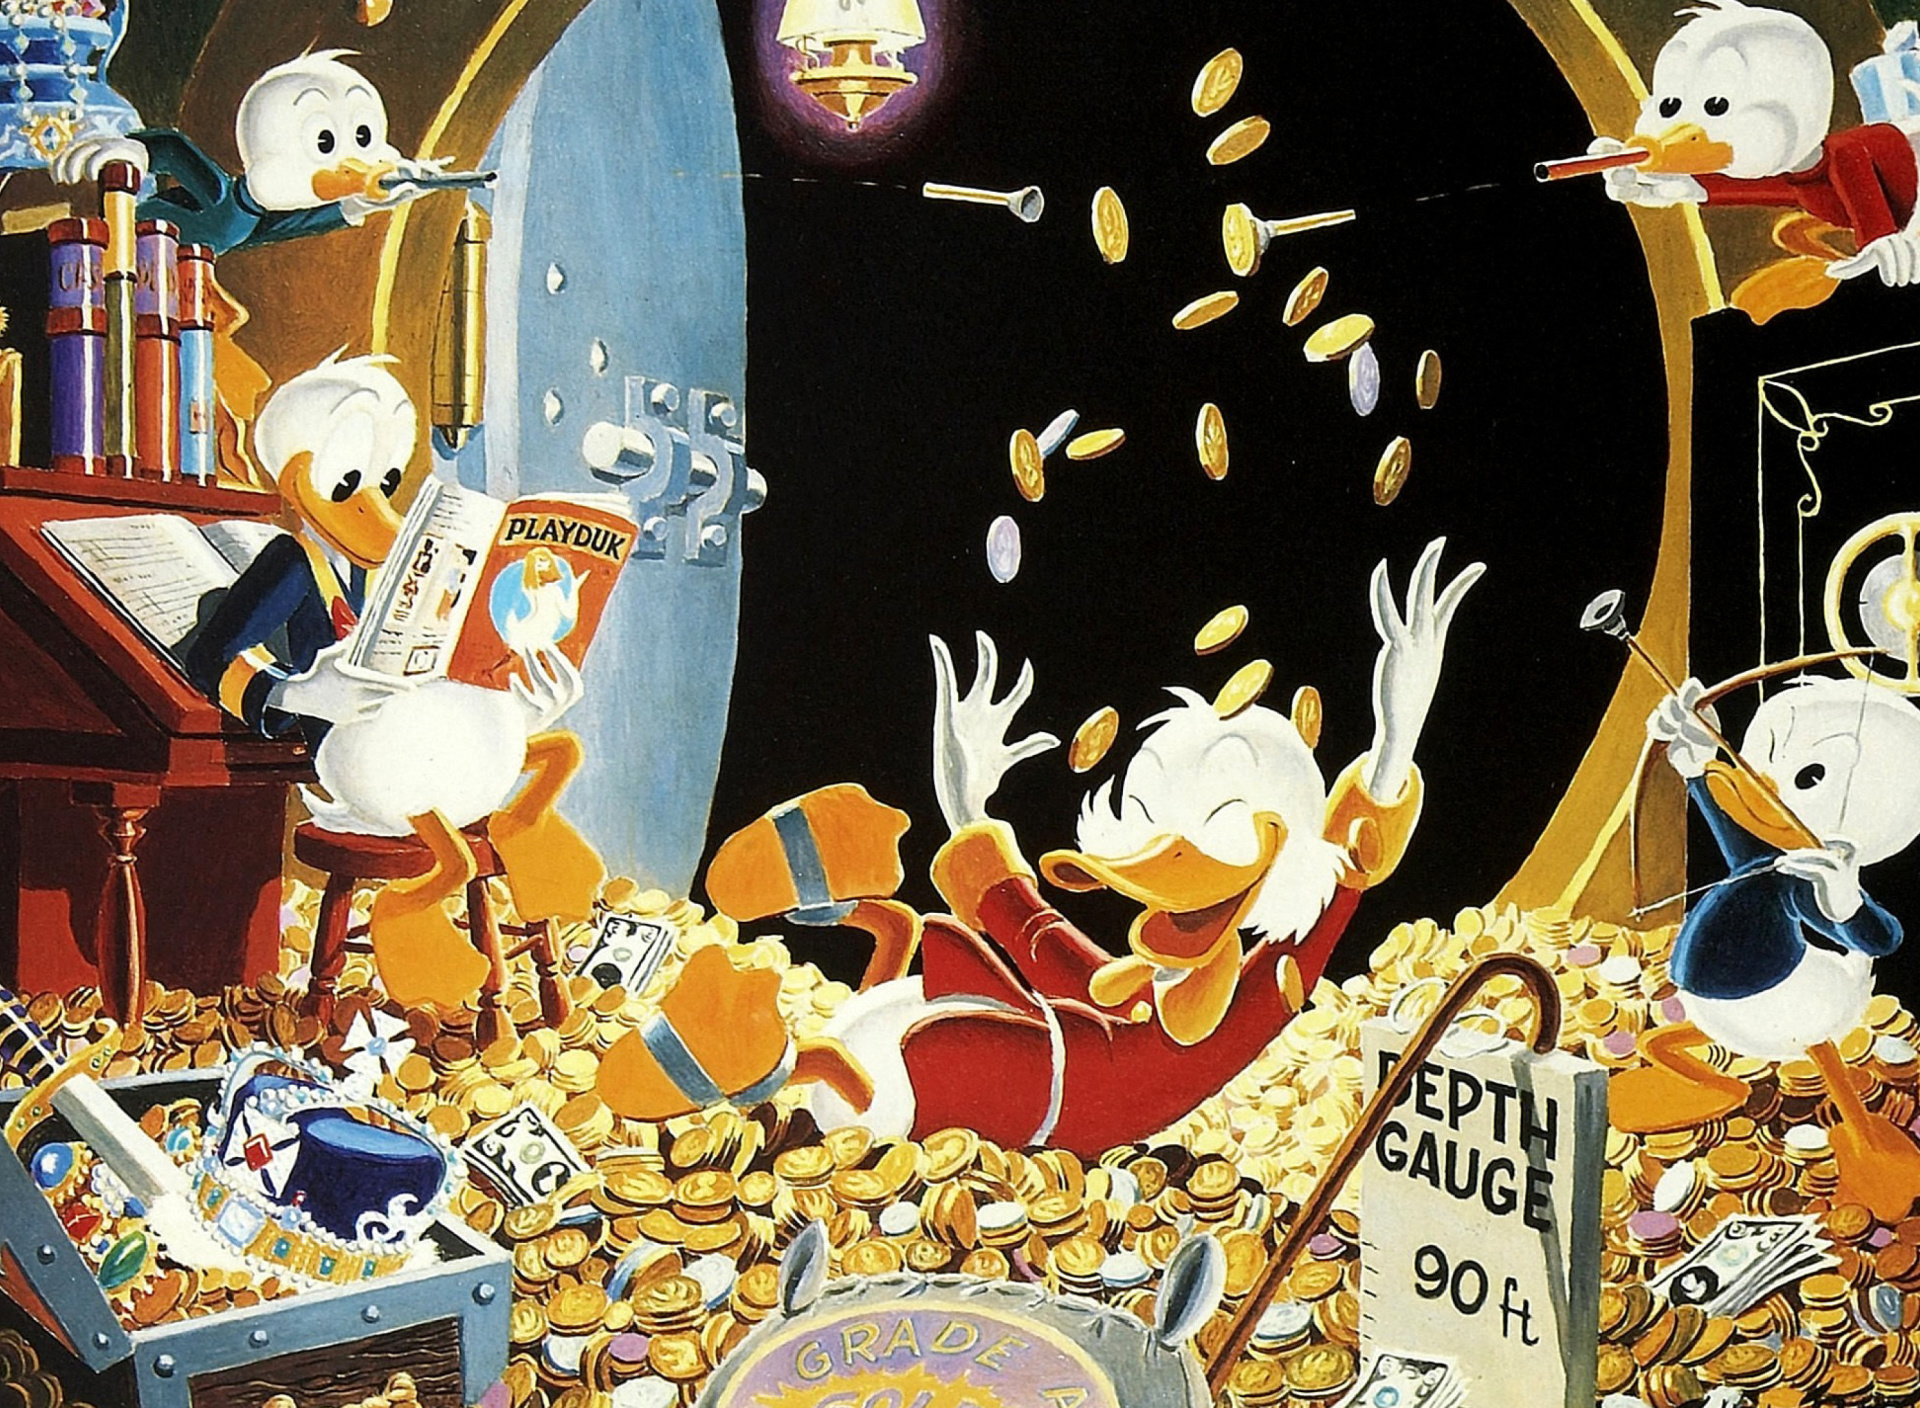 Sfondi DuckTales and Scrooge McDuck Money 1920x1408